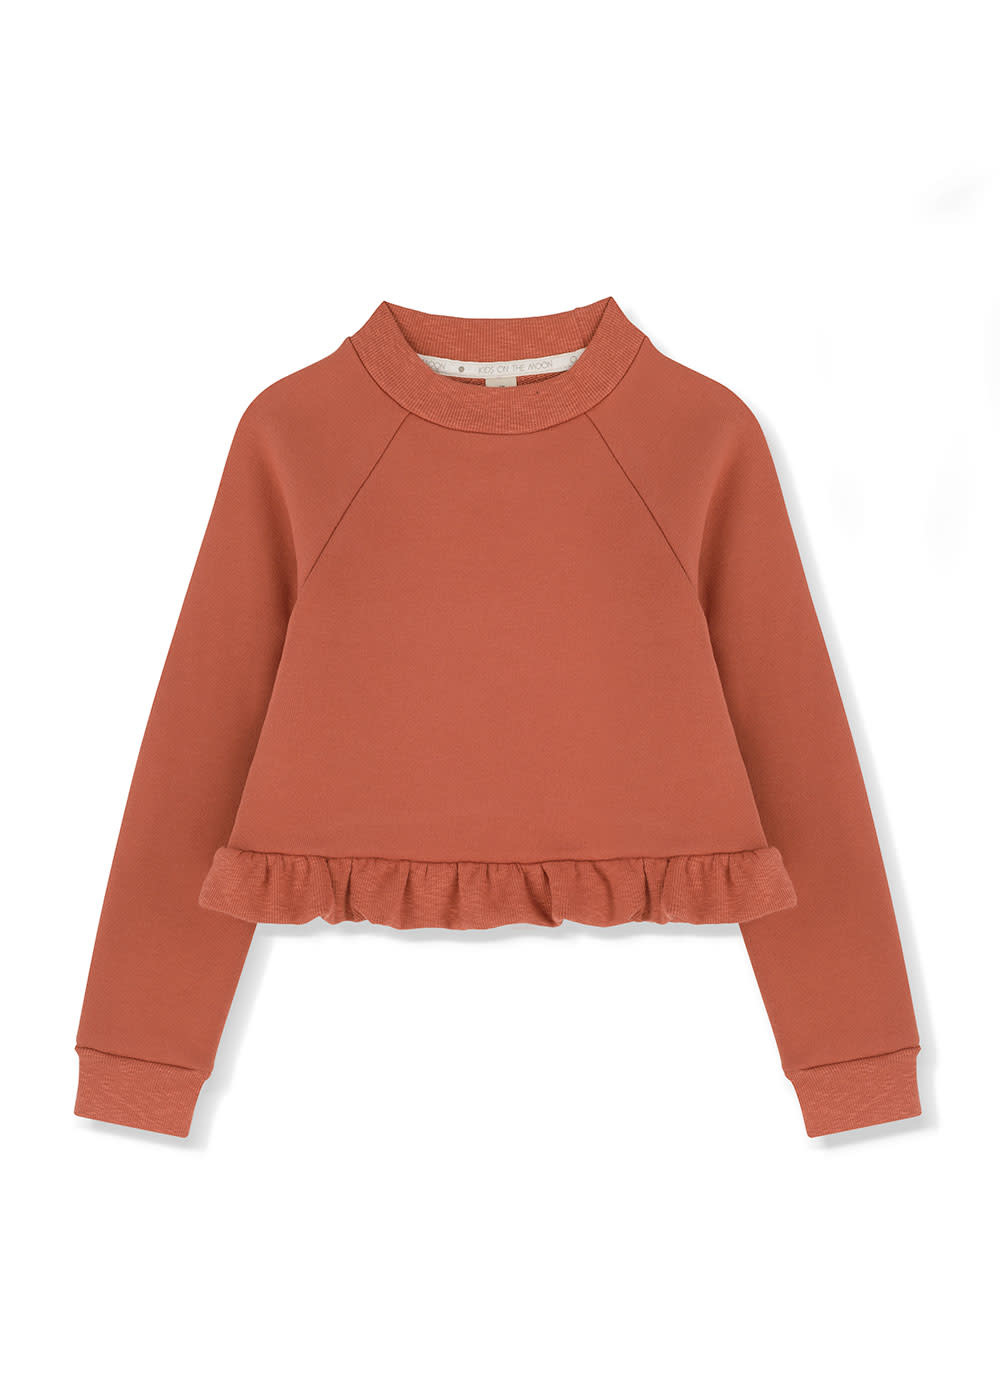 Kids on the moon Kids on the moon - Clay frill sweatshirt